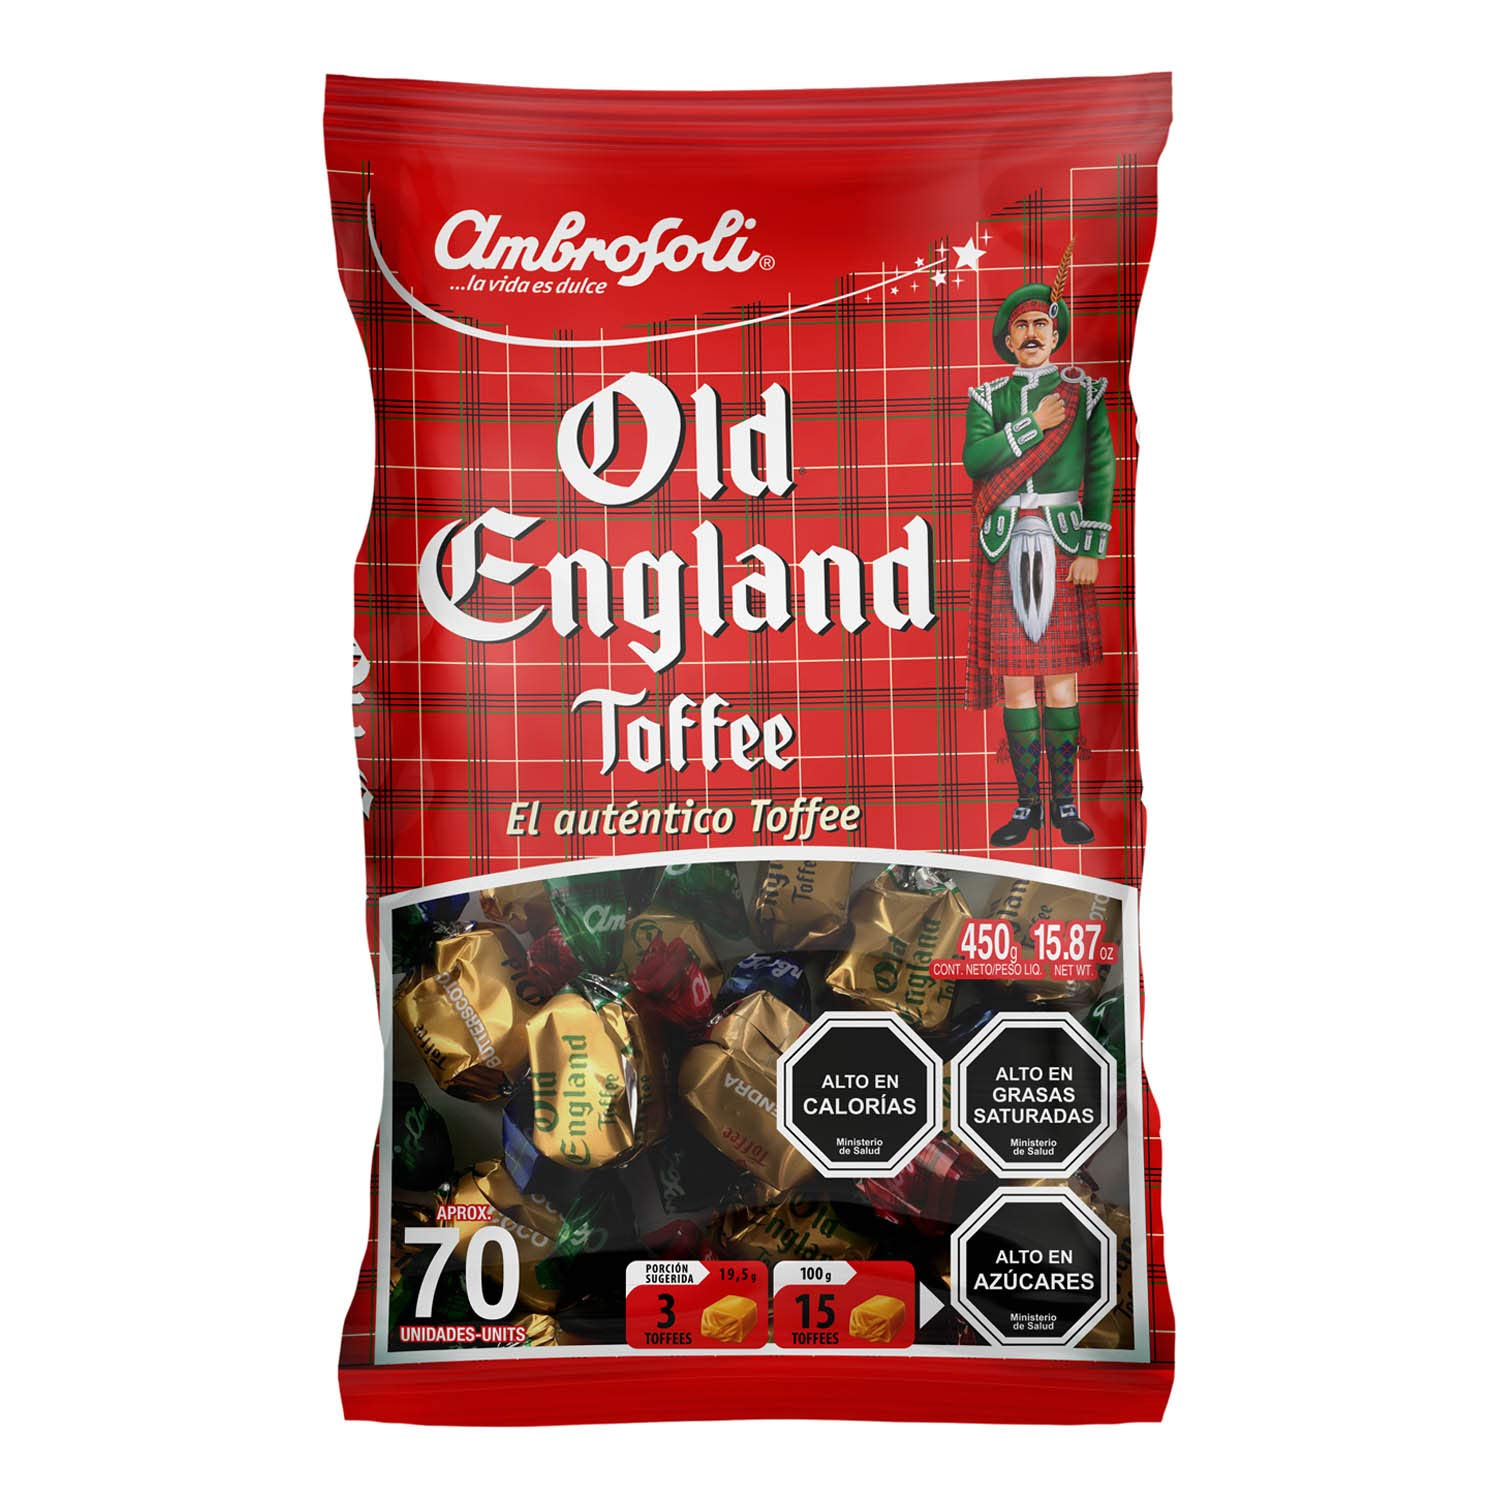 Old England Toffee Candy Ambrosoli Authentic Chilean Candies. Assorted Almond, Coco, Butterscotch. Bags 130, 450 and 1000 grms (450)